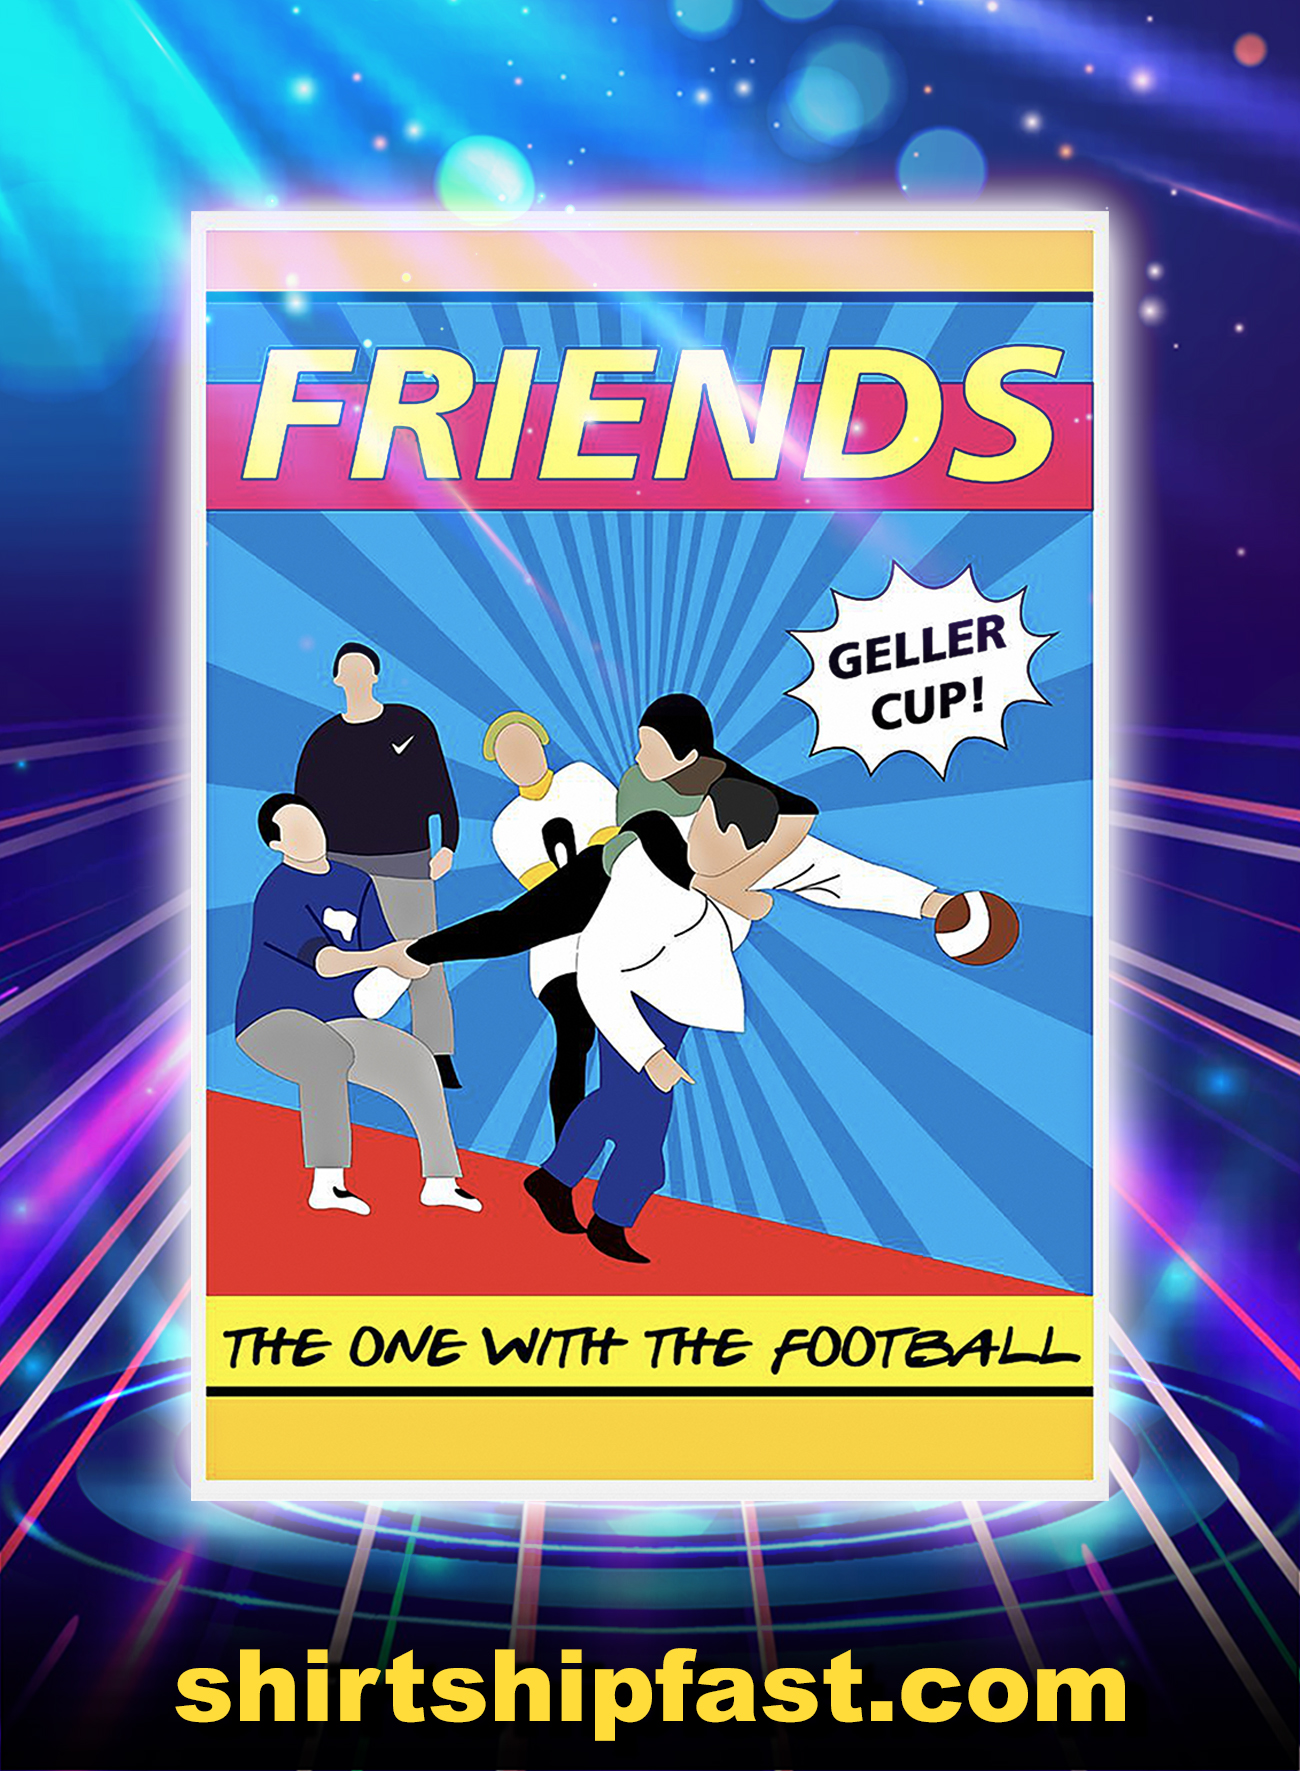 Friends geller cup the one with the football poster